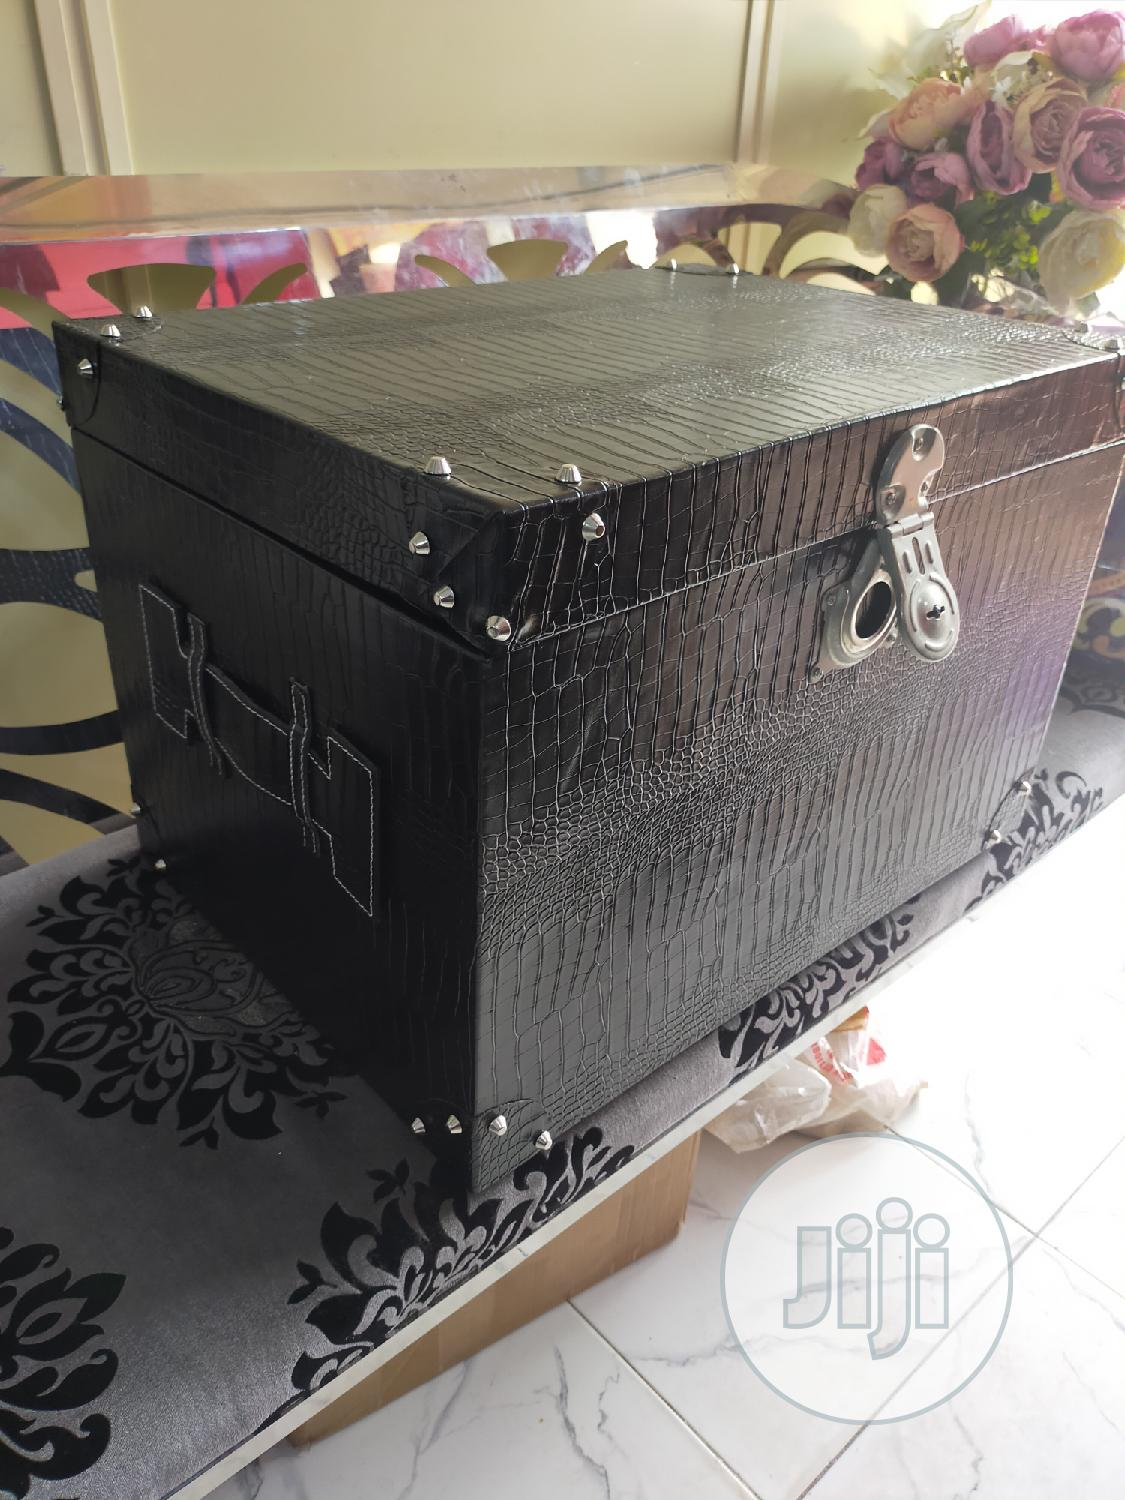 Black Wood And Leather Executive Gift Trucks For Hamper | Arts & Crafts for sale in Surulere, Lagos State, Nigeria